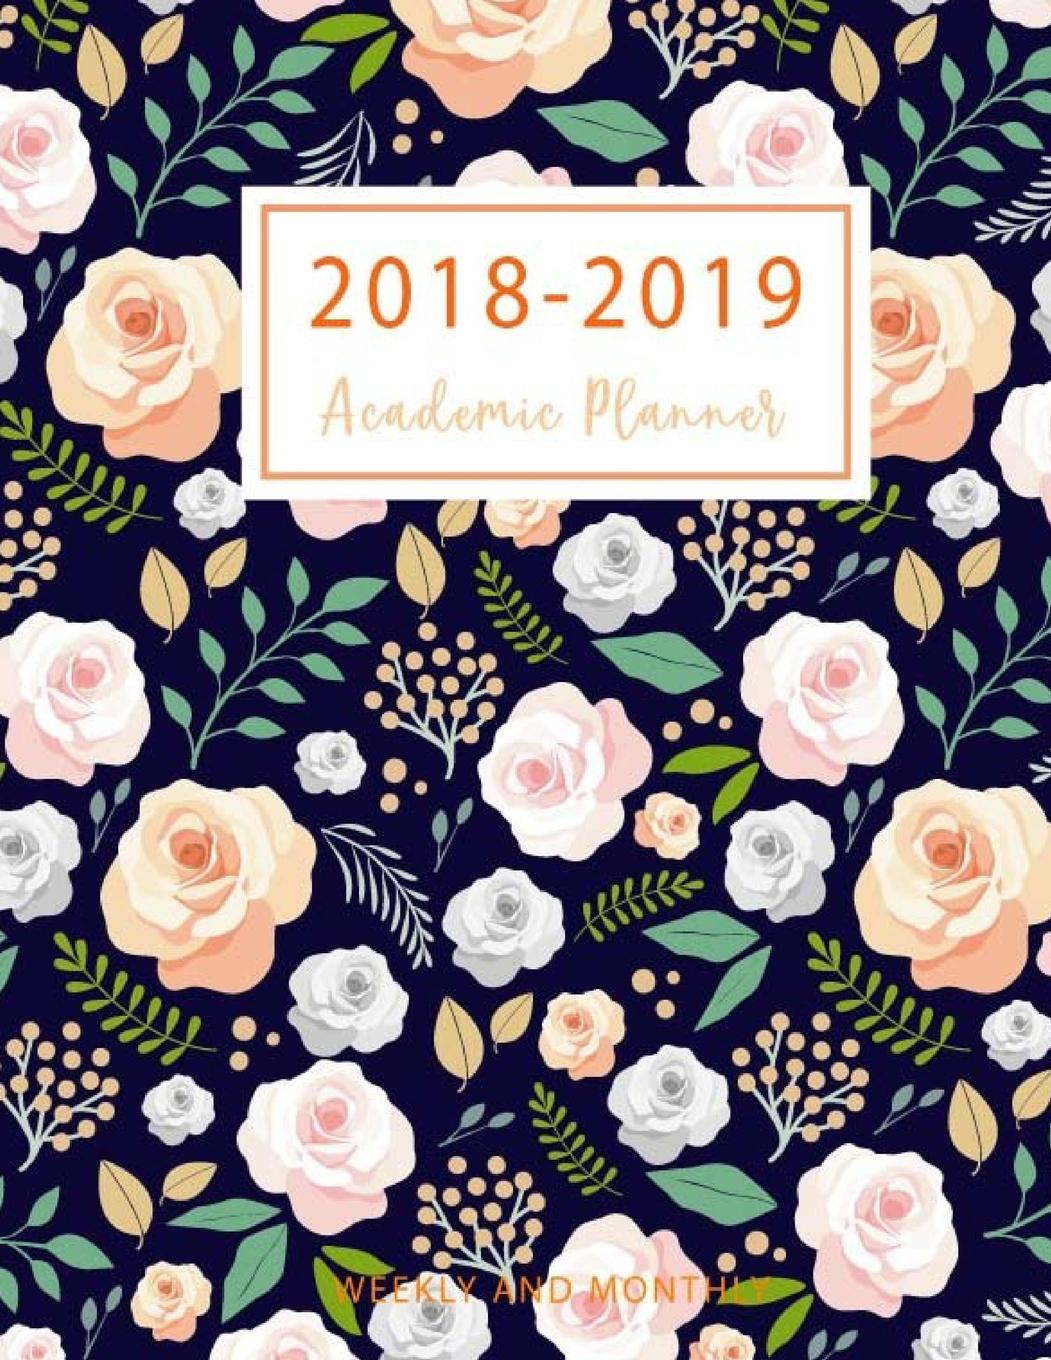 2018-2019 Academic Planner Weekly and Monthly: 2018-2019 Two Planner, 18 Months July 2018 to December 2019 for... by